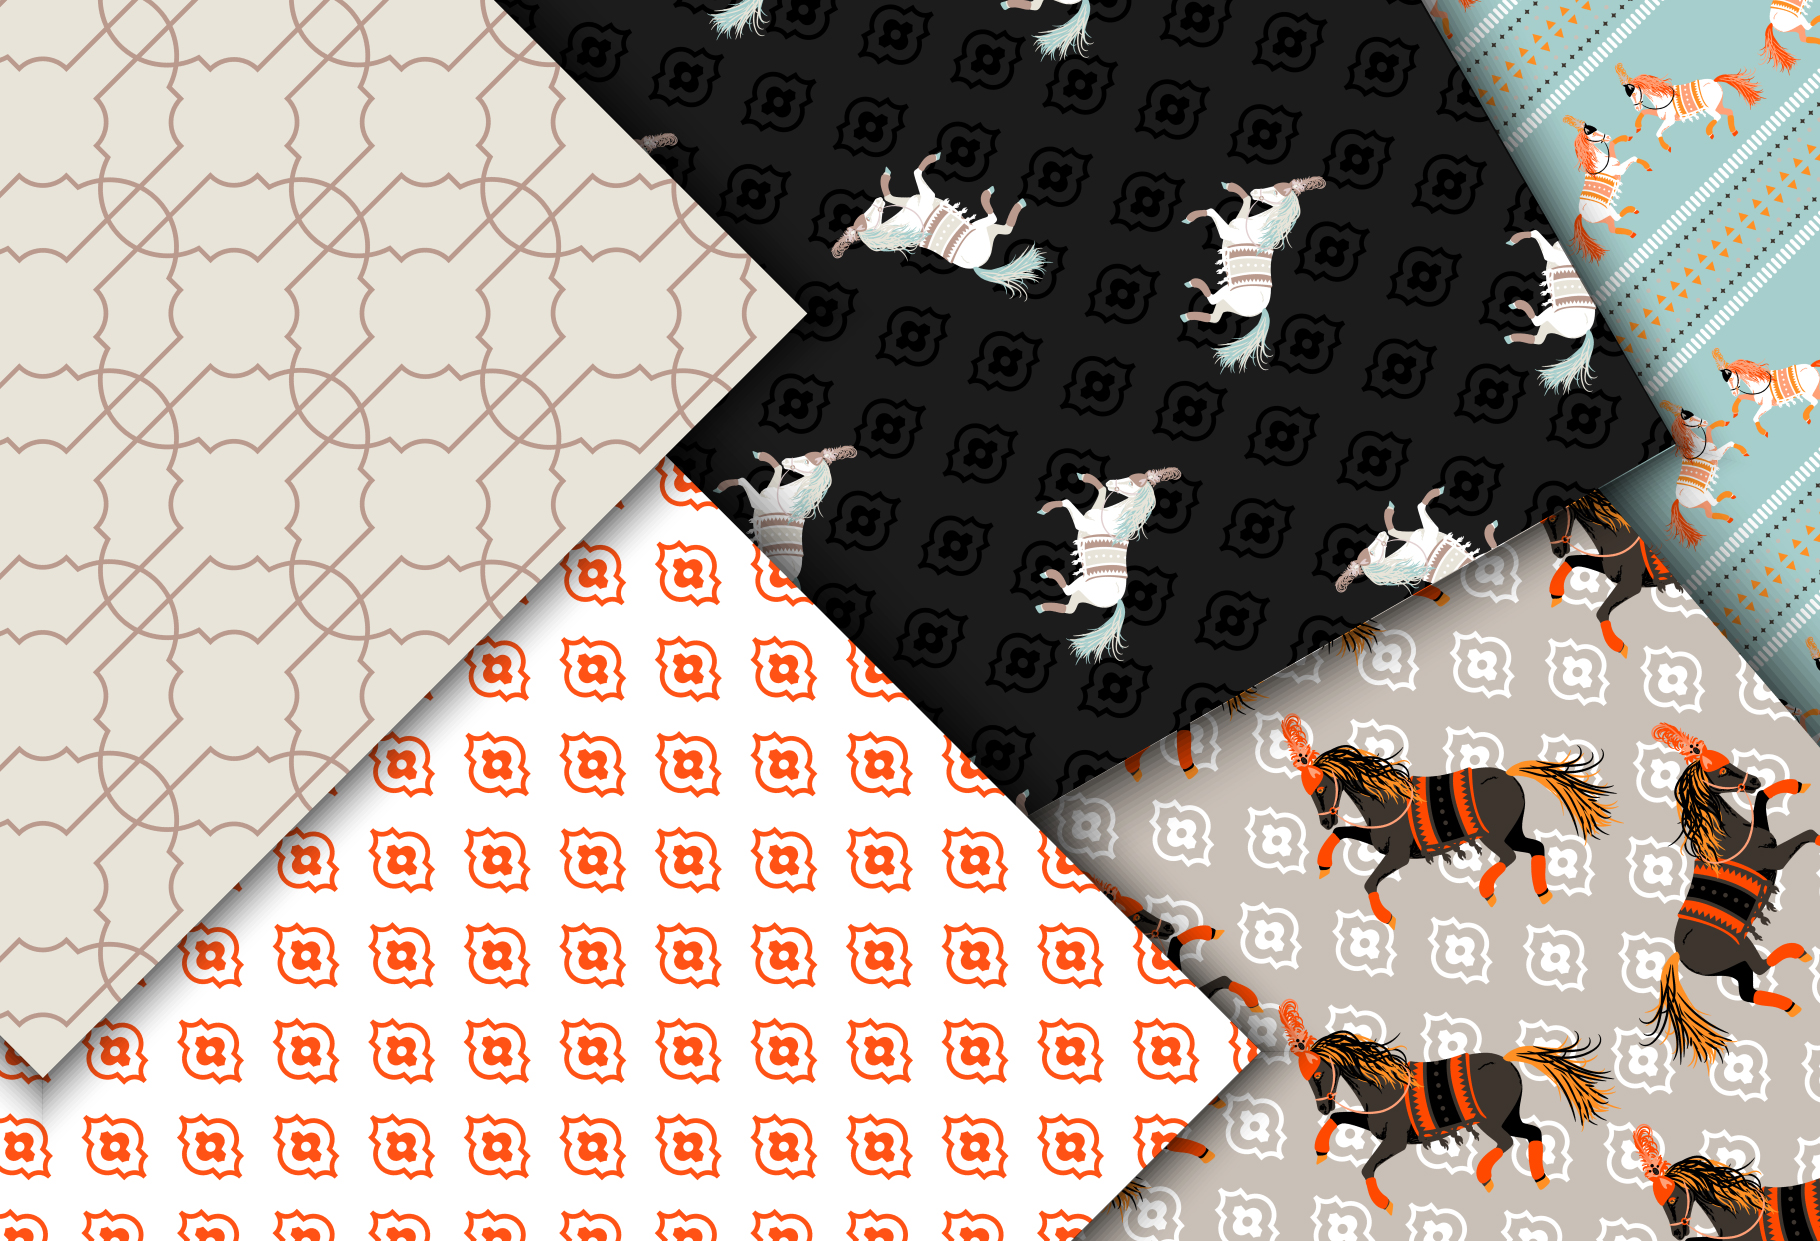 Horse Show - Seamless Patterns example image 5